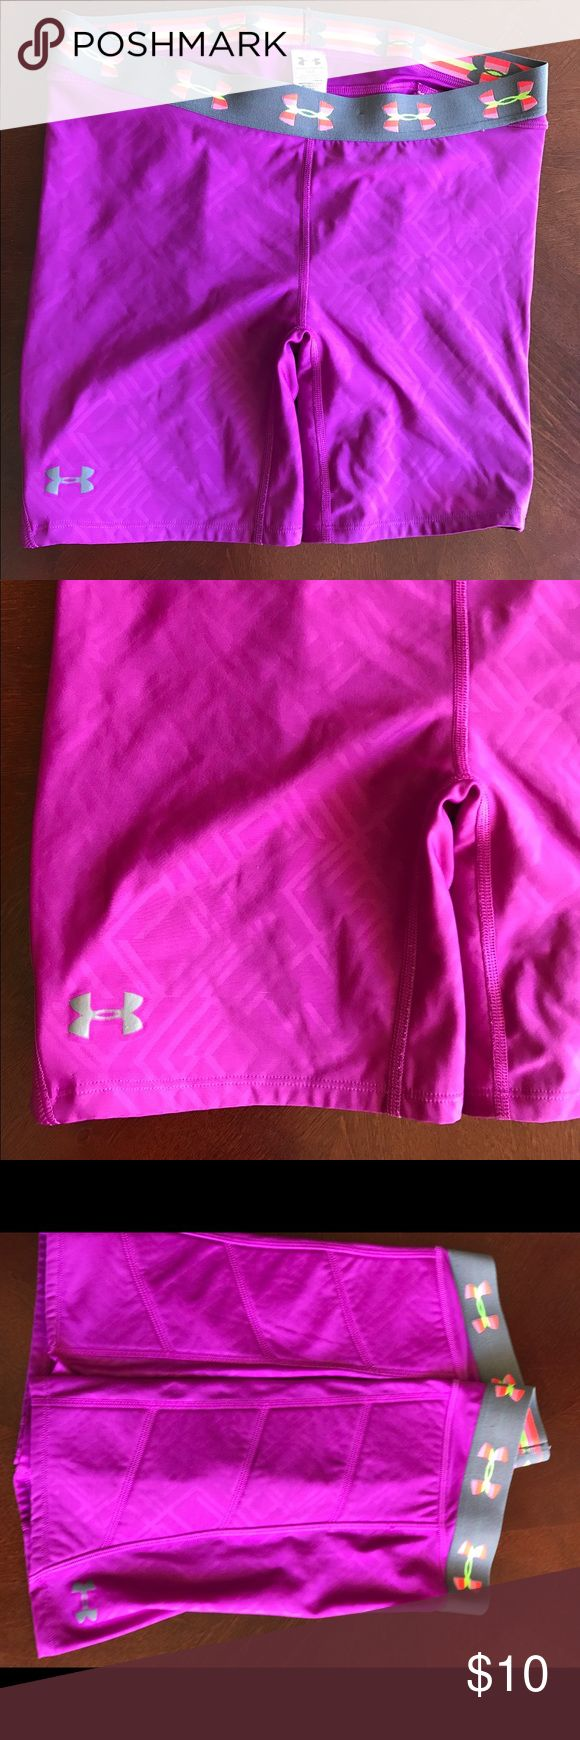 Under Armour pink women's L purple bike shorts Under Armour pink women's L purple bike shorts. Padded. Great very gently worn condition. Under Armour Shorts